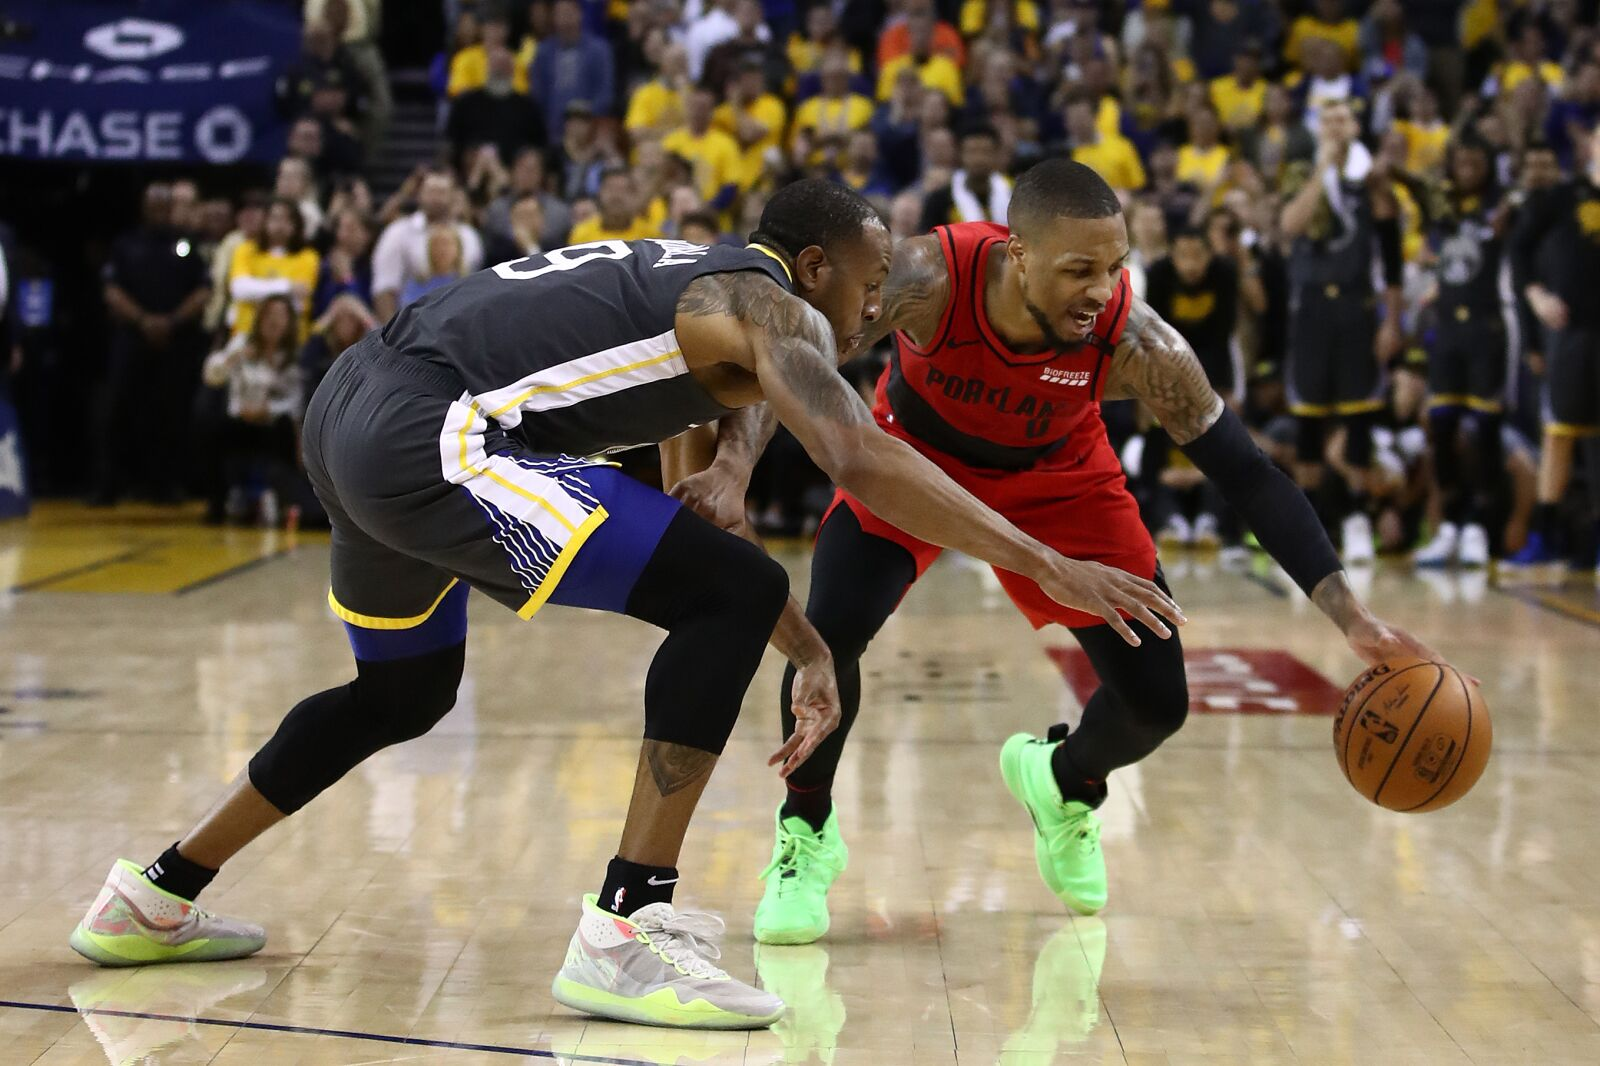 663cfe8bf48c Cats in the Pros: Why Andre Iguodala is an elite defender in the NBA